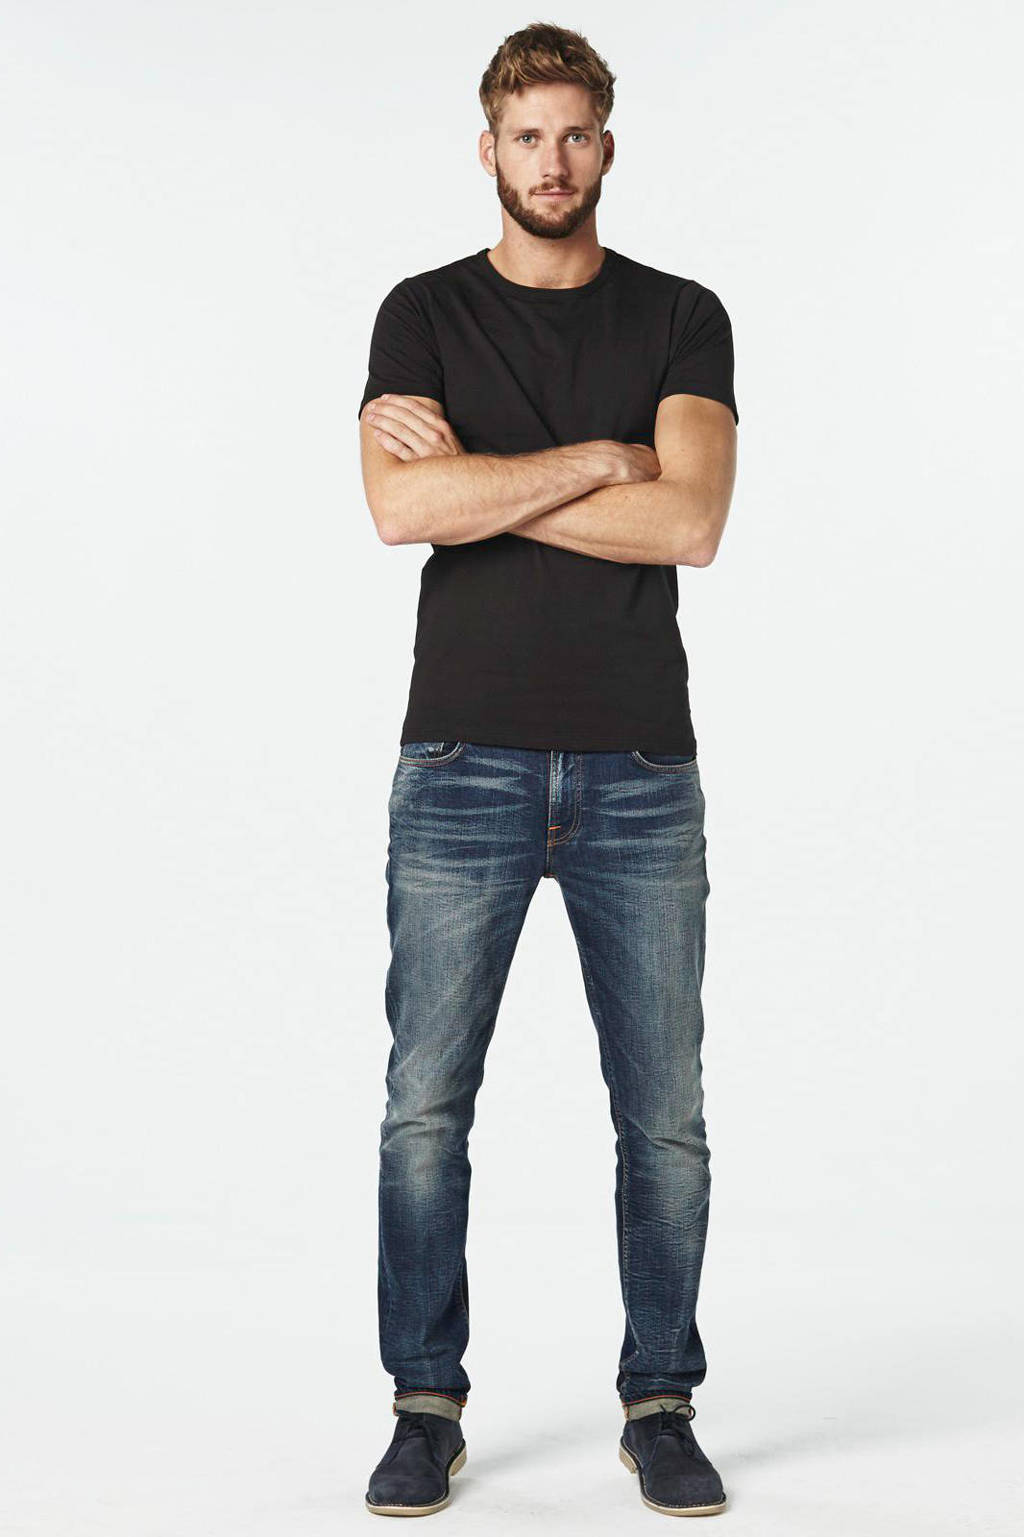 Jack & Jones T-shirt (set van 2), Zwart